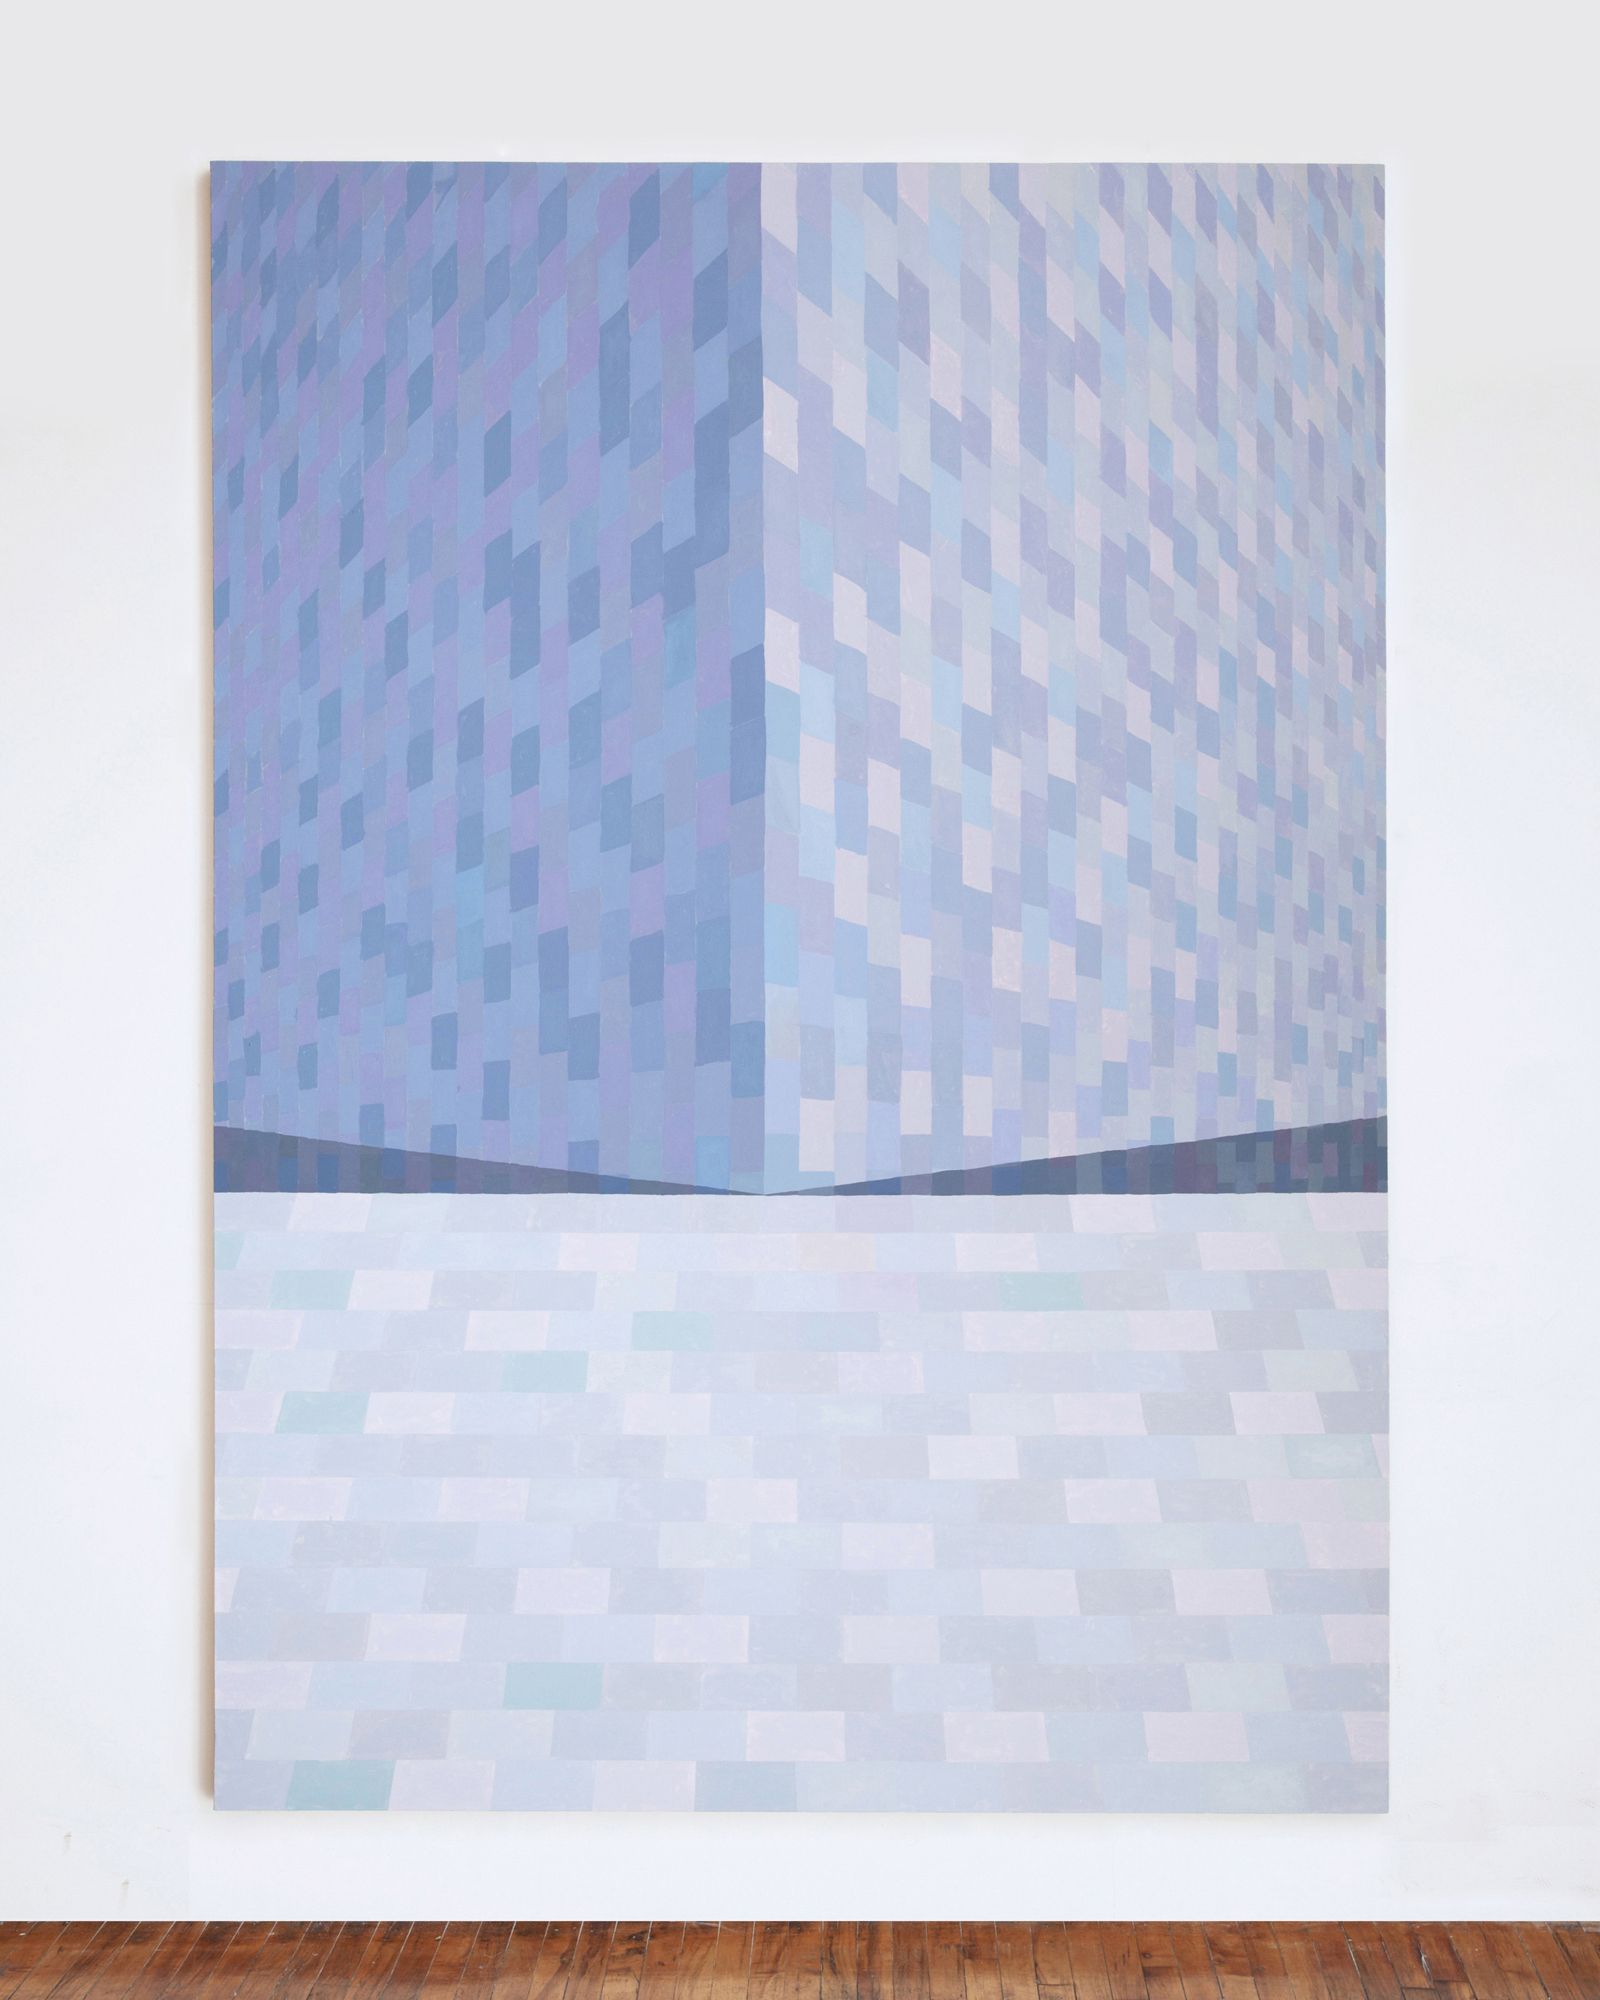 Corydon Cowansage, Roof #16, 2013, 106 x 76 inches, oil on canvas